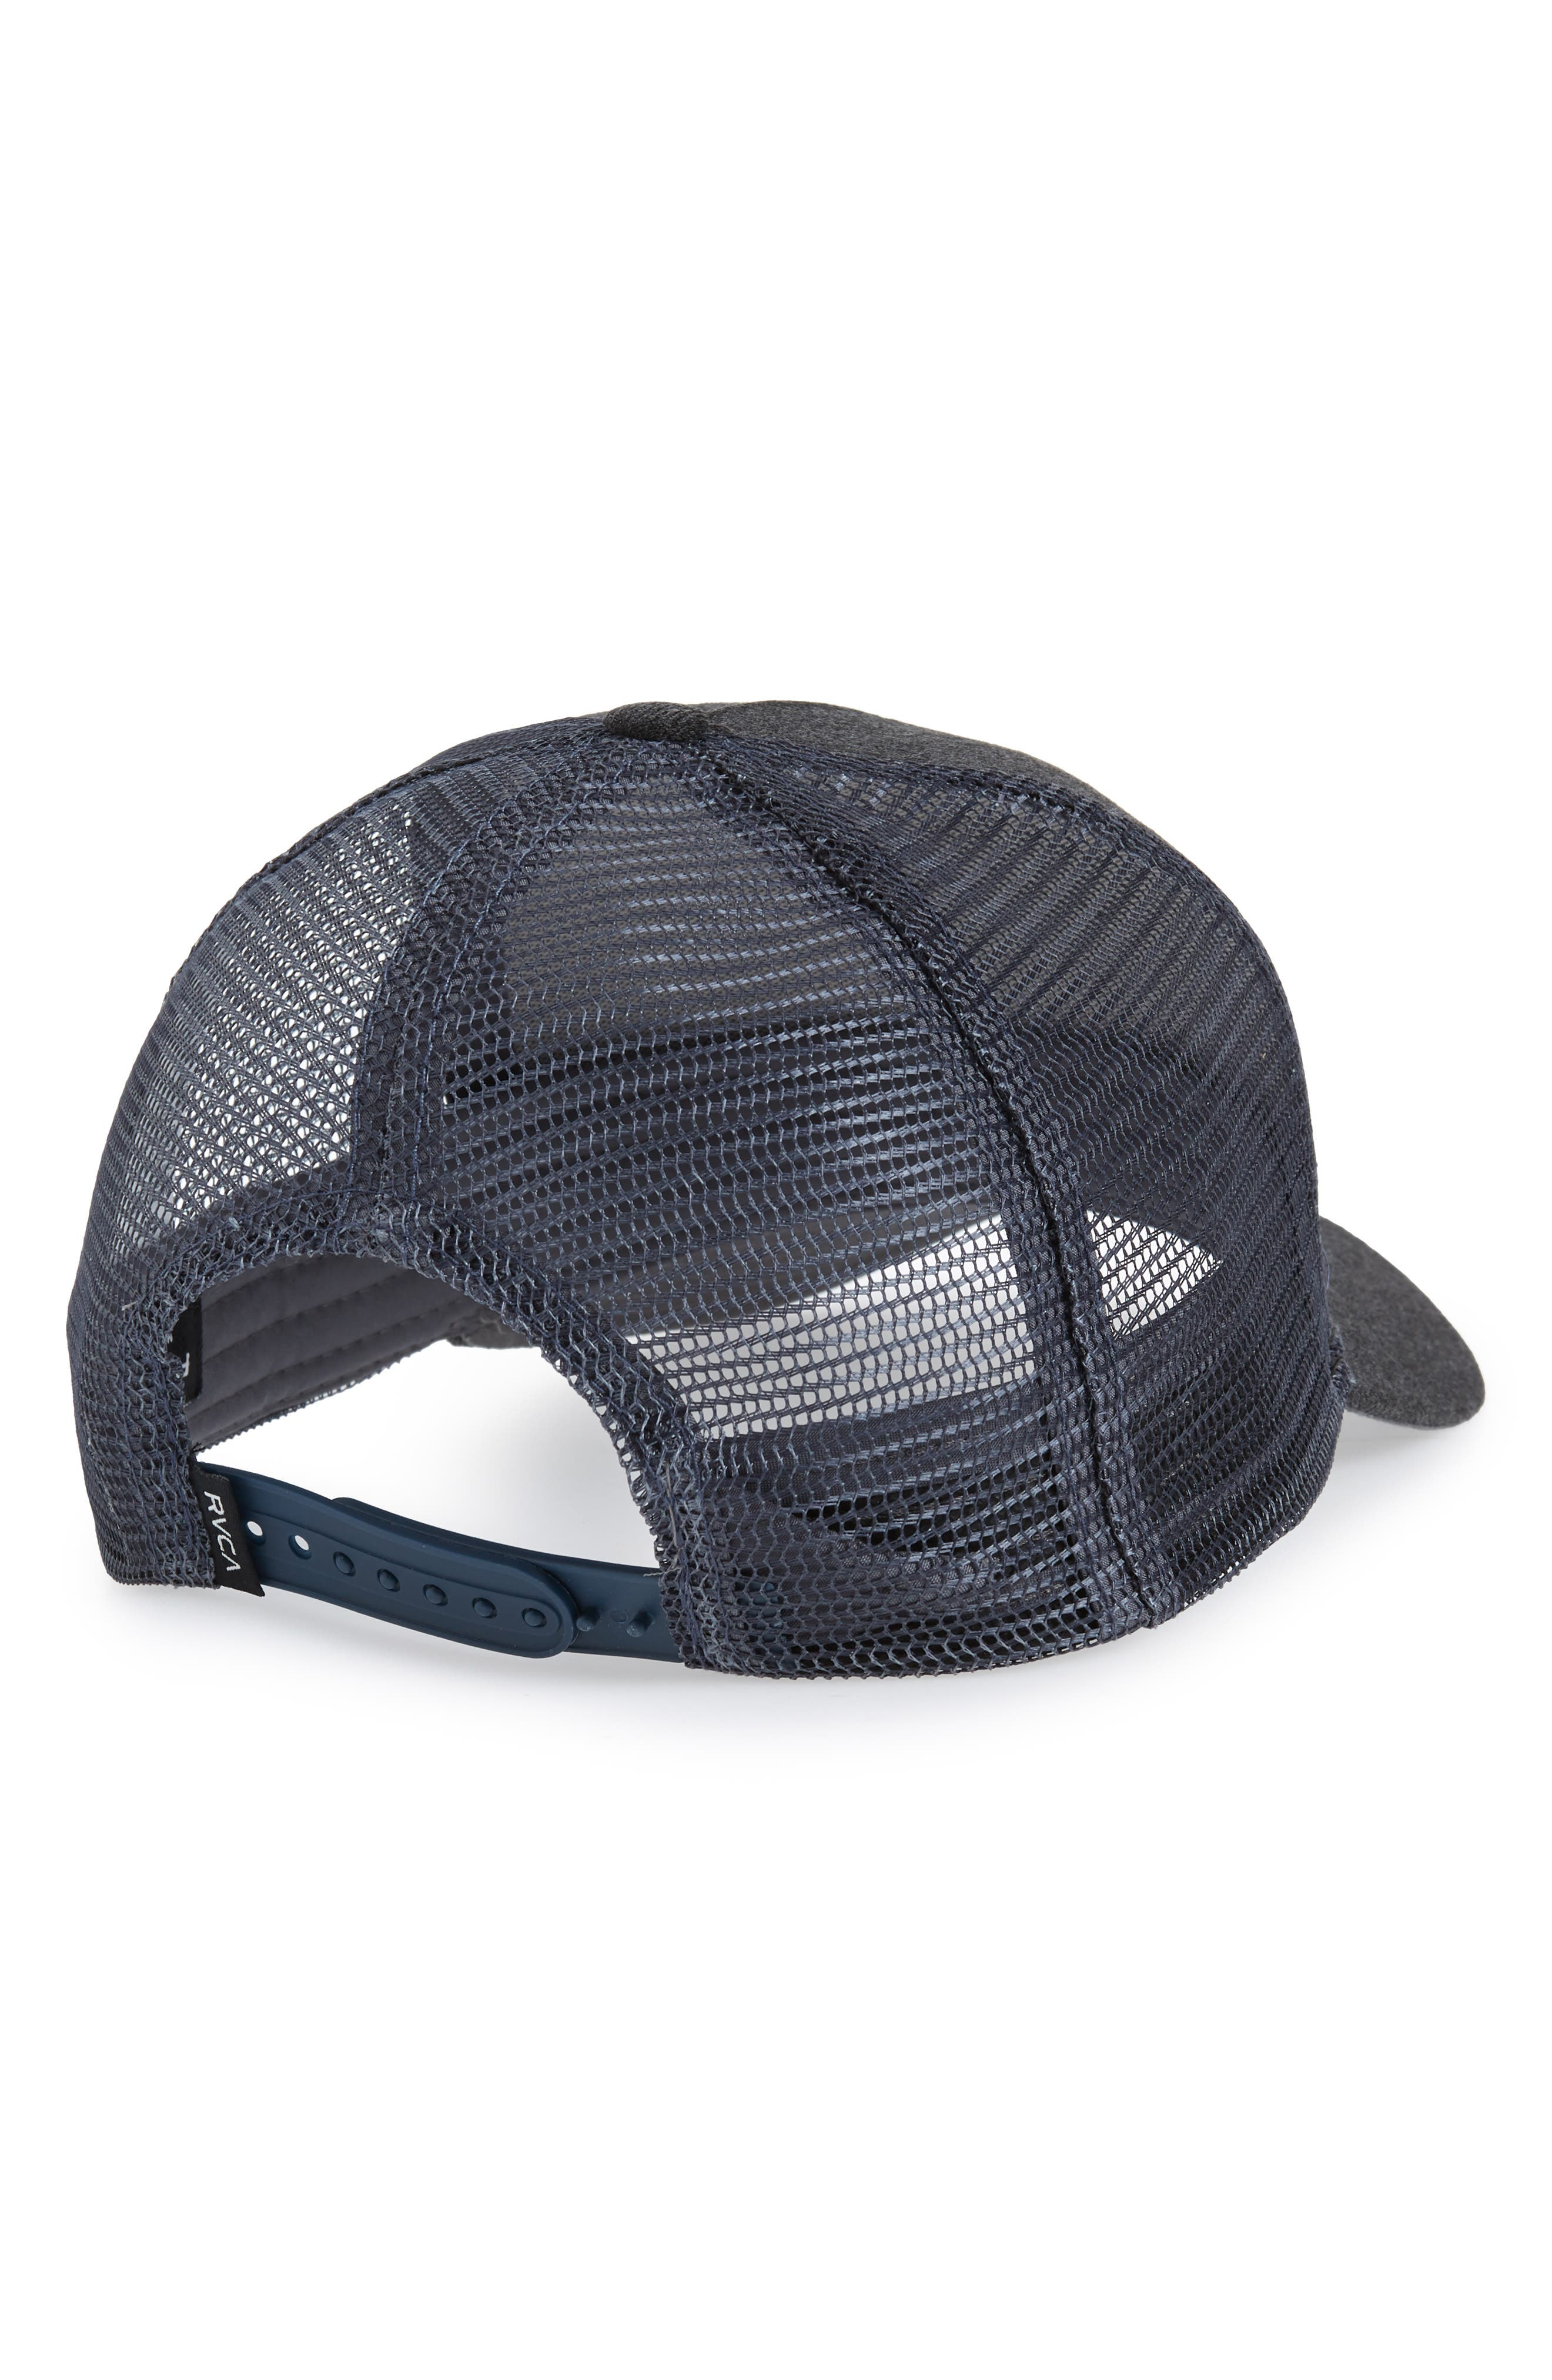 Trail Trucker Hat,                             Alternate thumbnail 2, color,                             CHARCOAL HEATHER